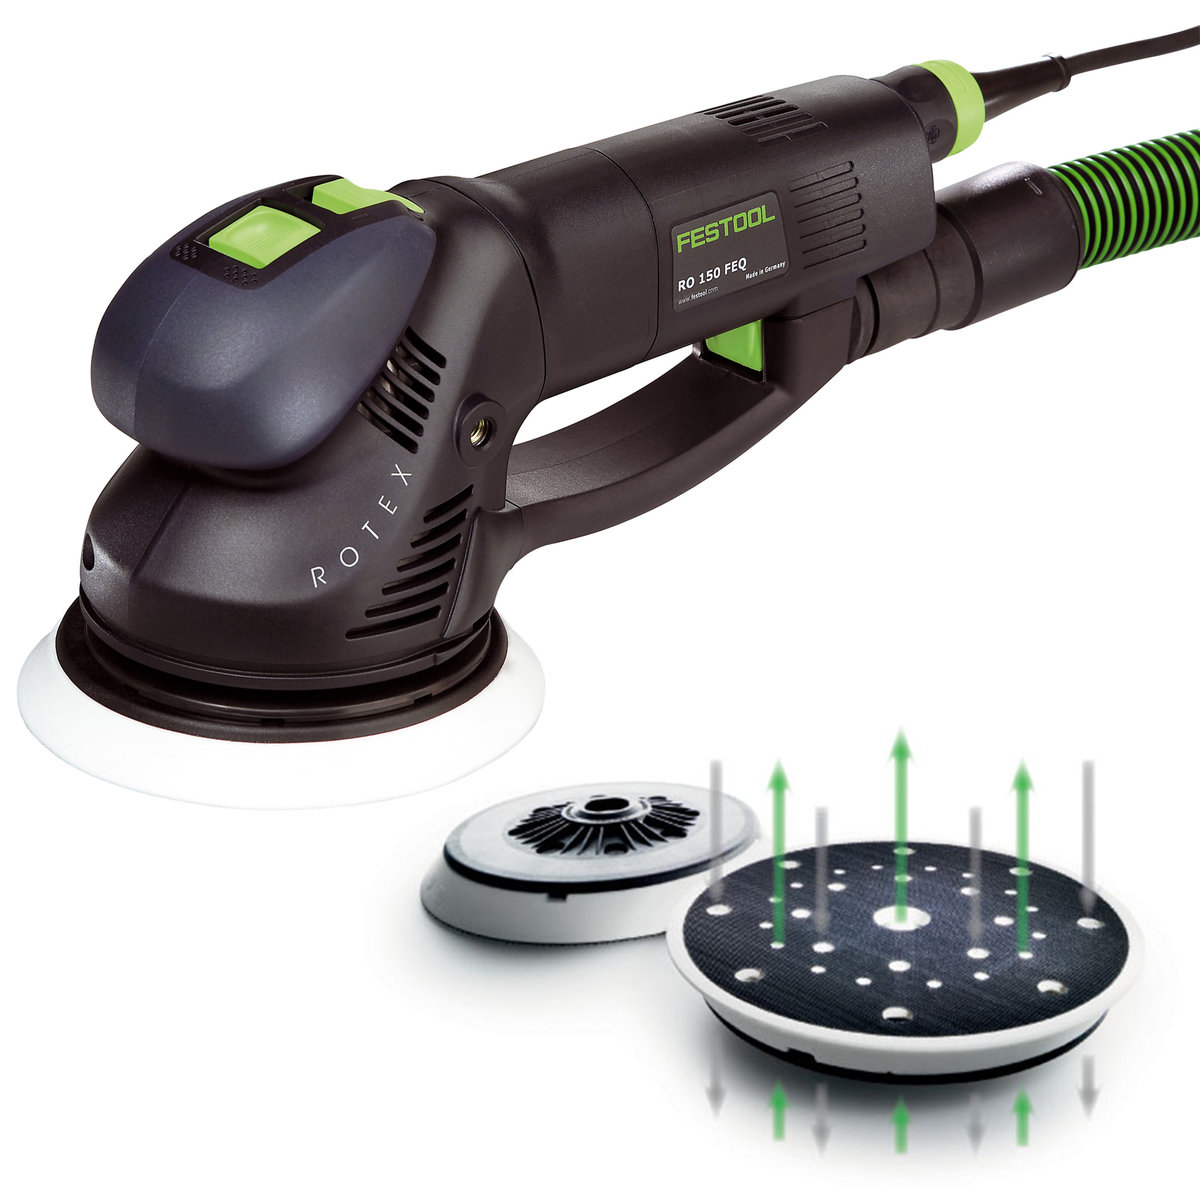 Festool Festool Rotex Dual Mode Sander With New Multi Jetstream Design With T Loc